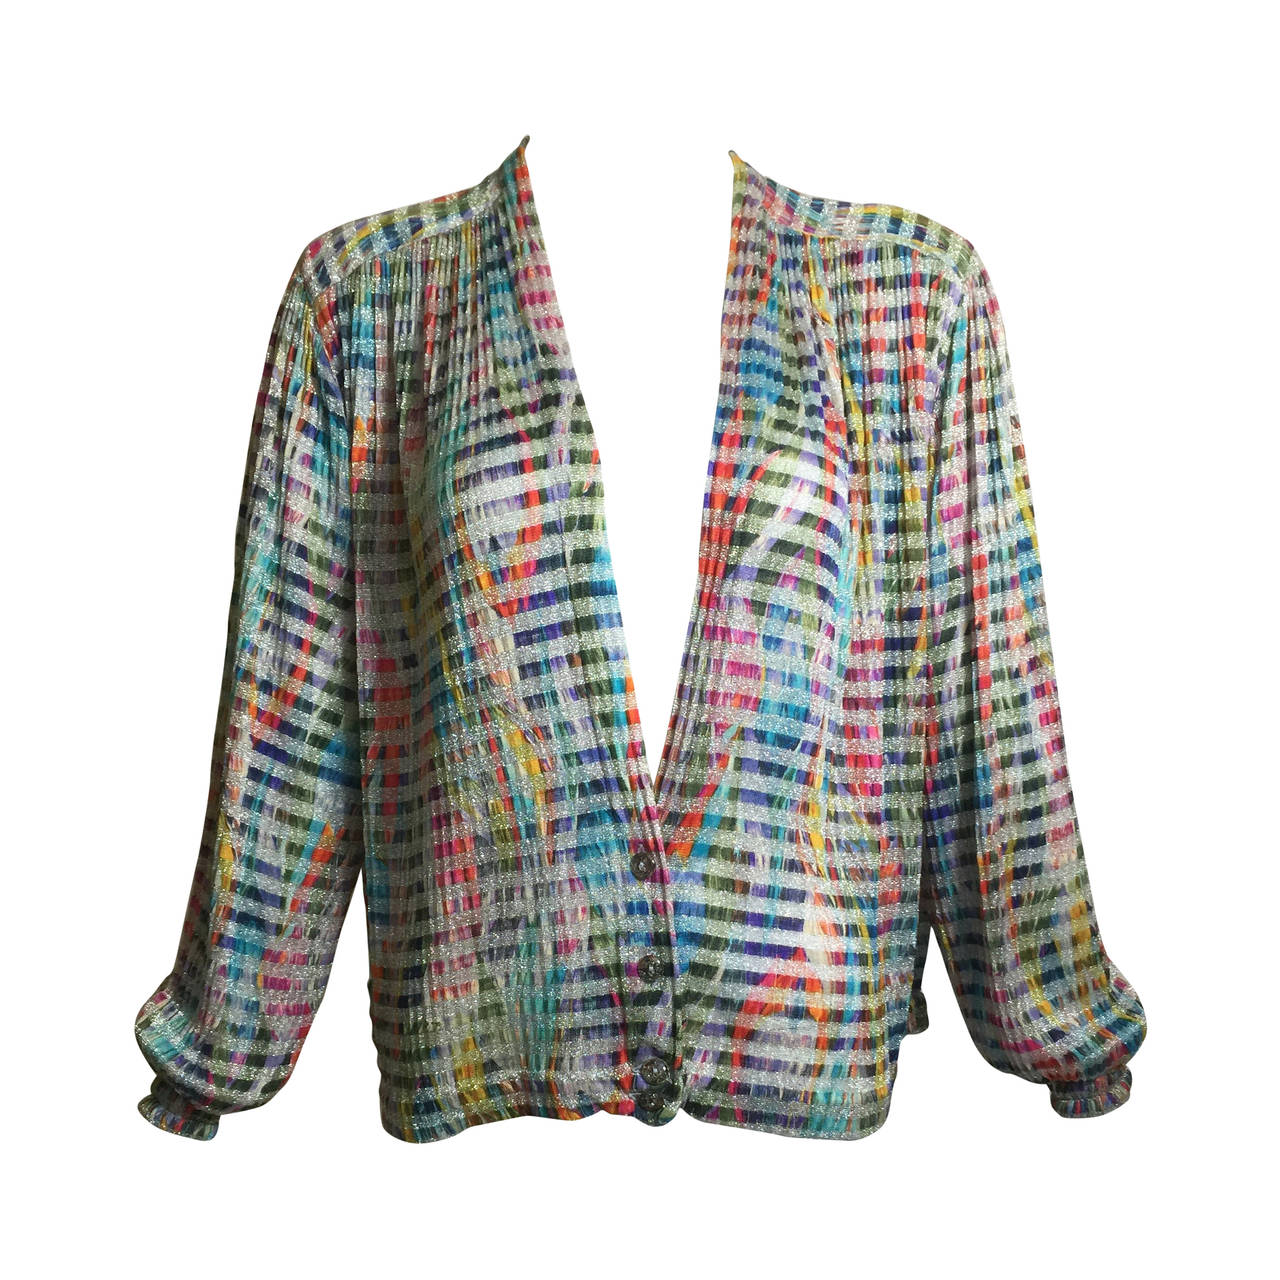 1970s Missoni Metallic Knit Cardigan Top 1